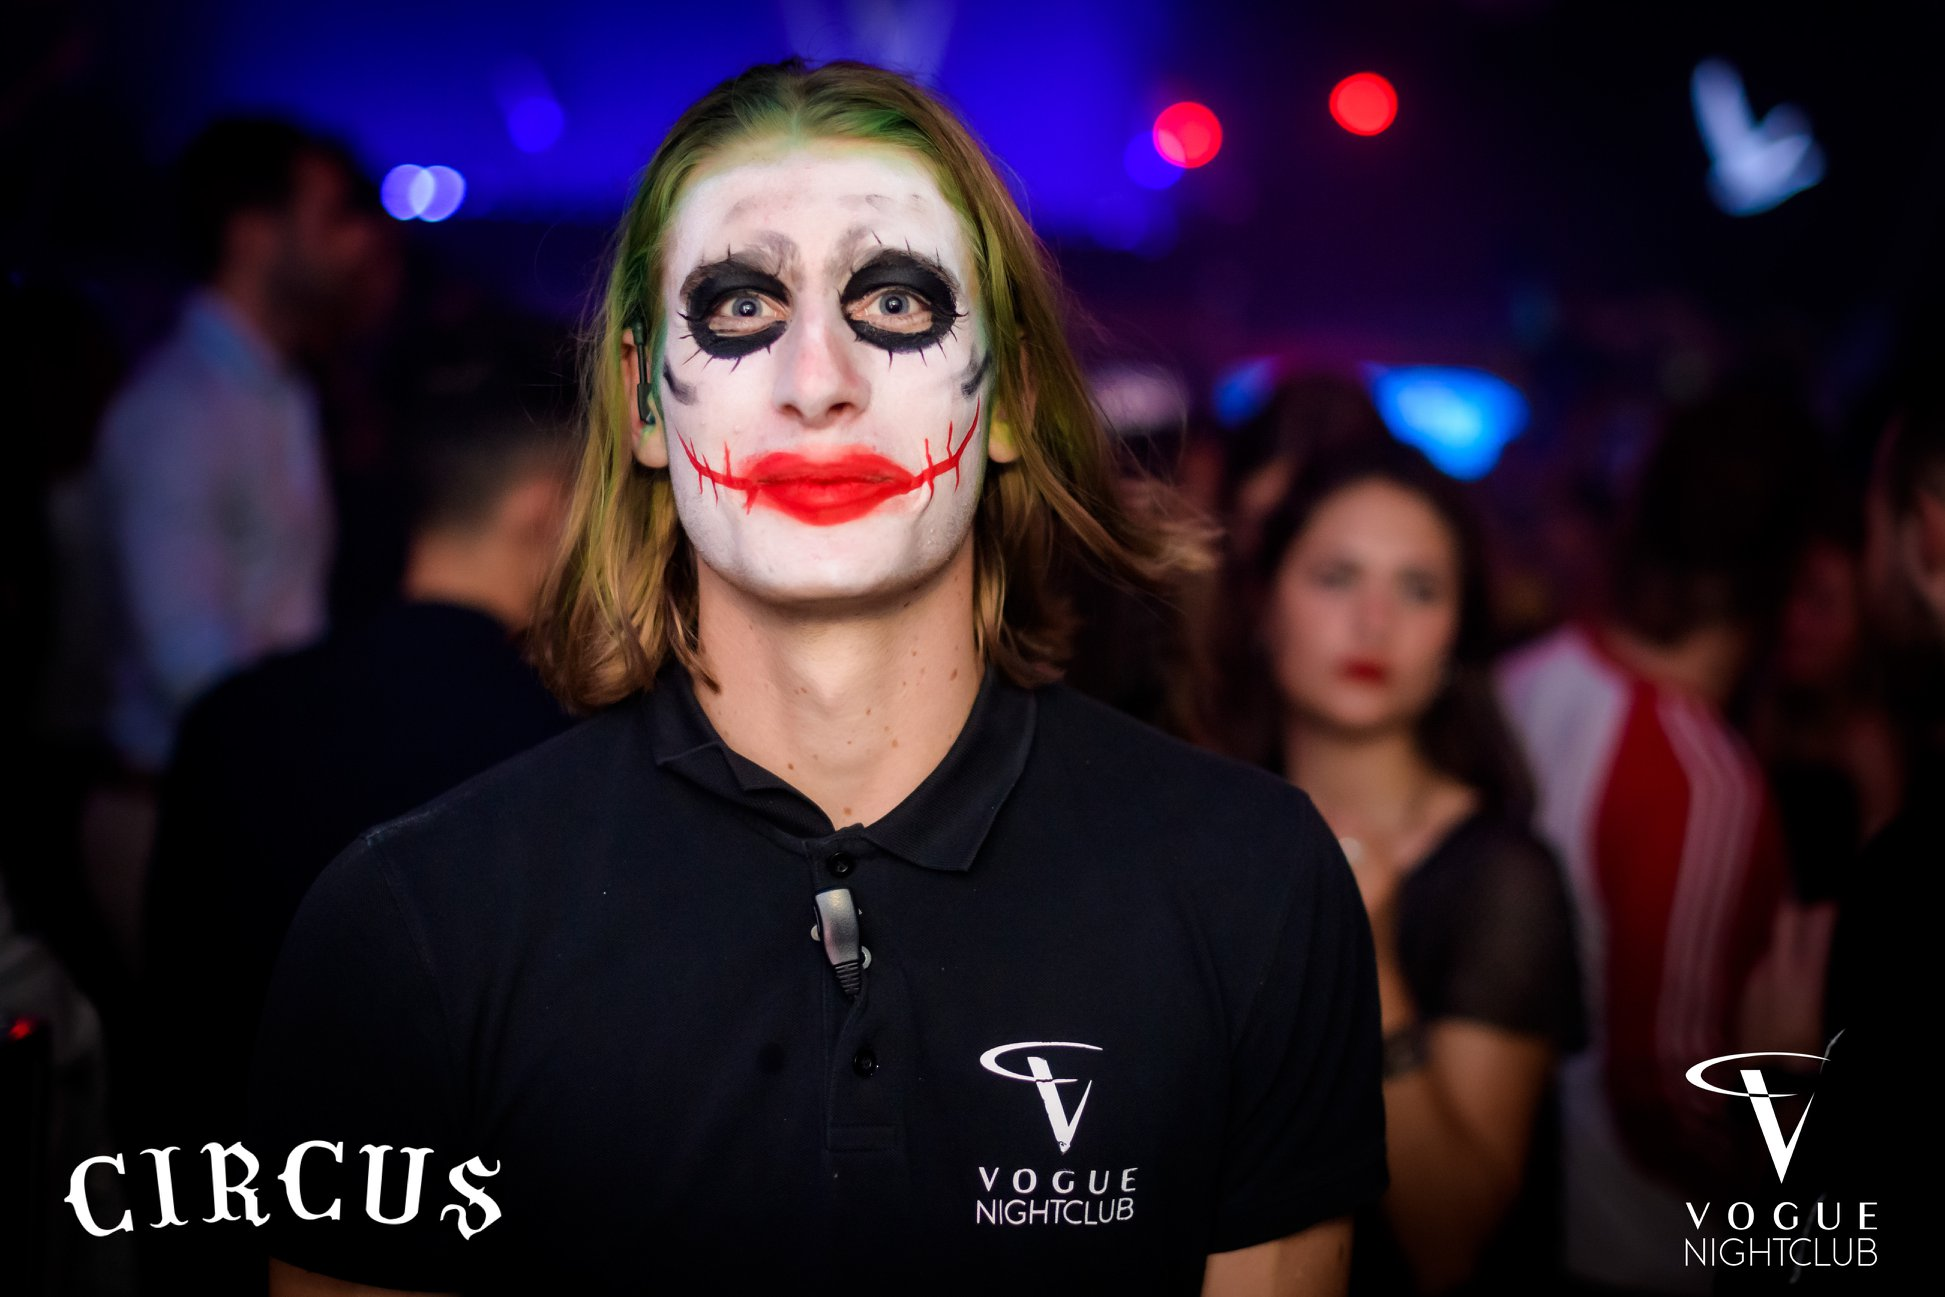 maquillage circus adulte